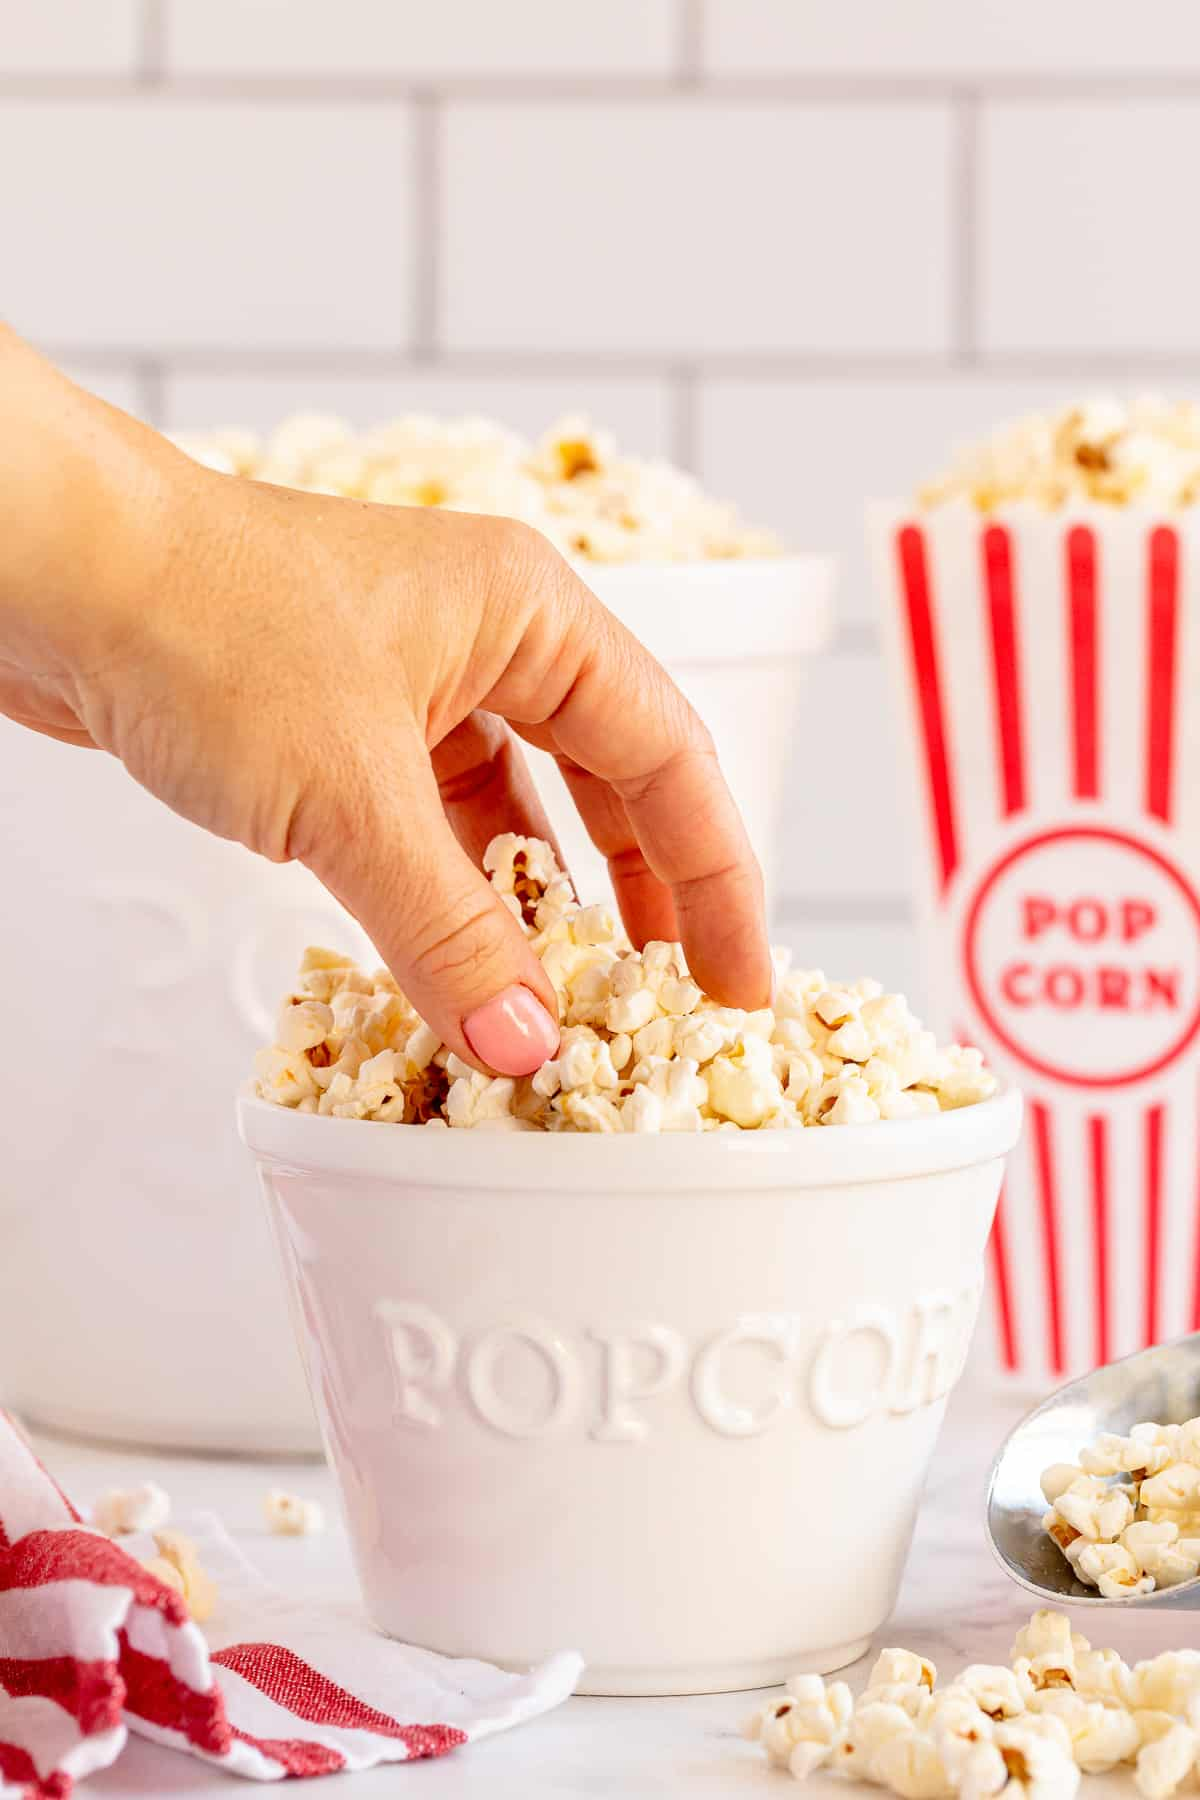 A hand reaches for popcorn from a white popcorn bowl.